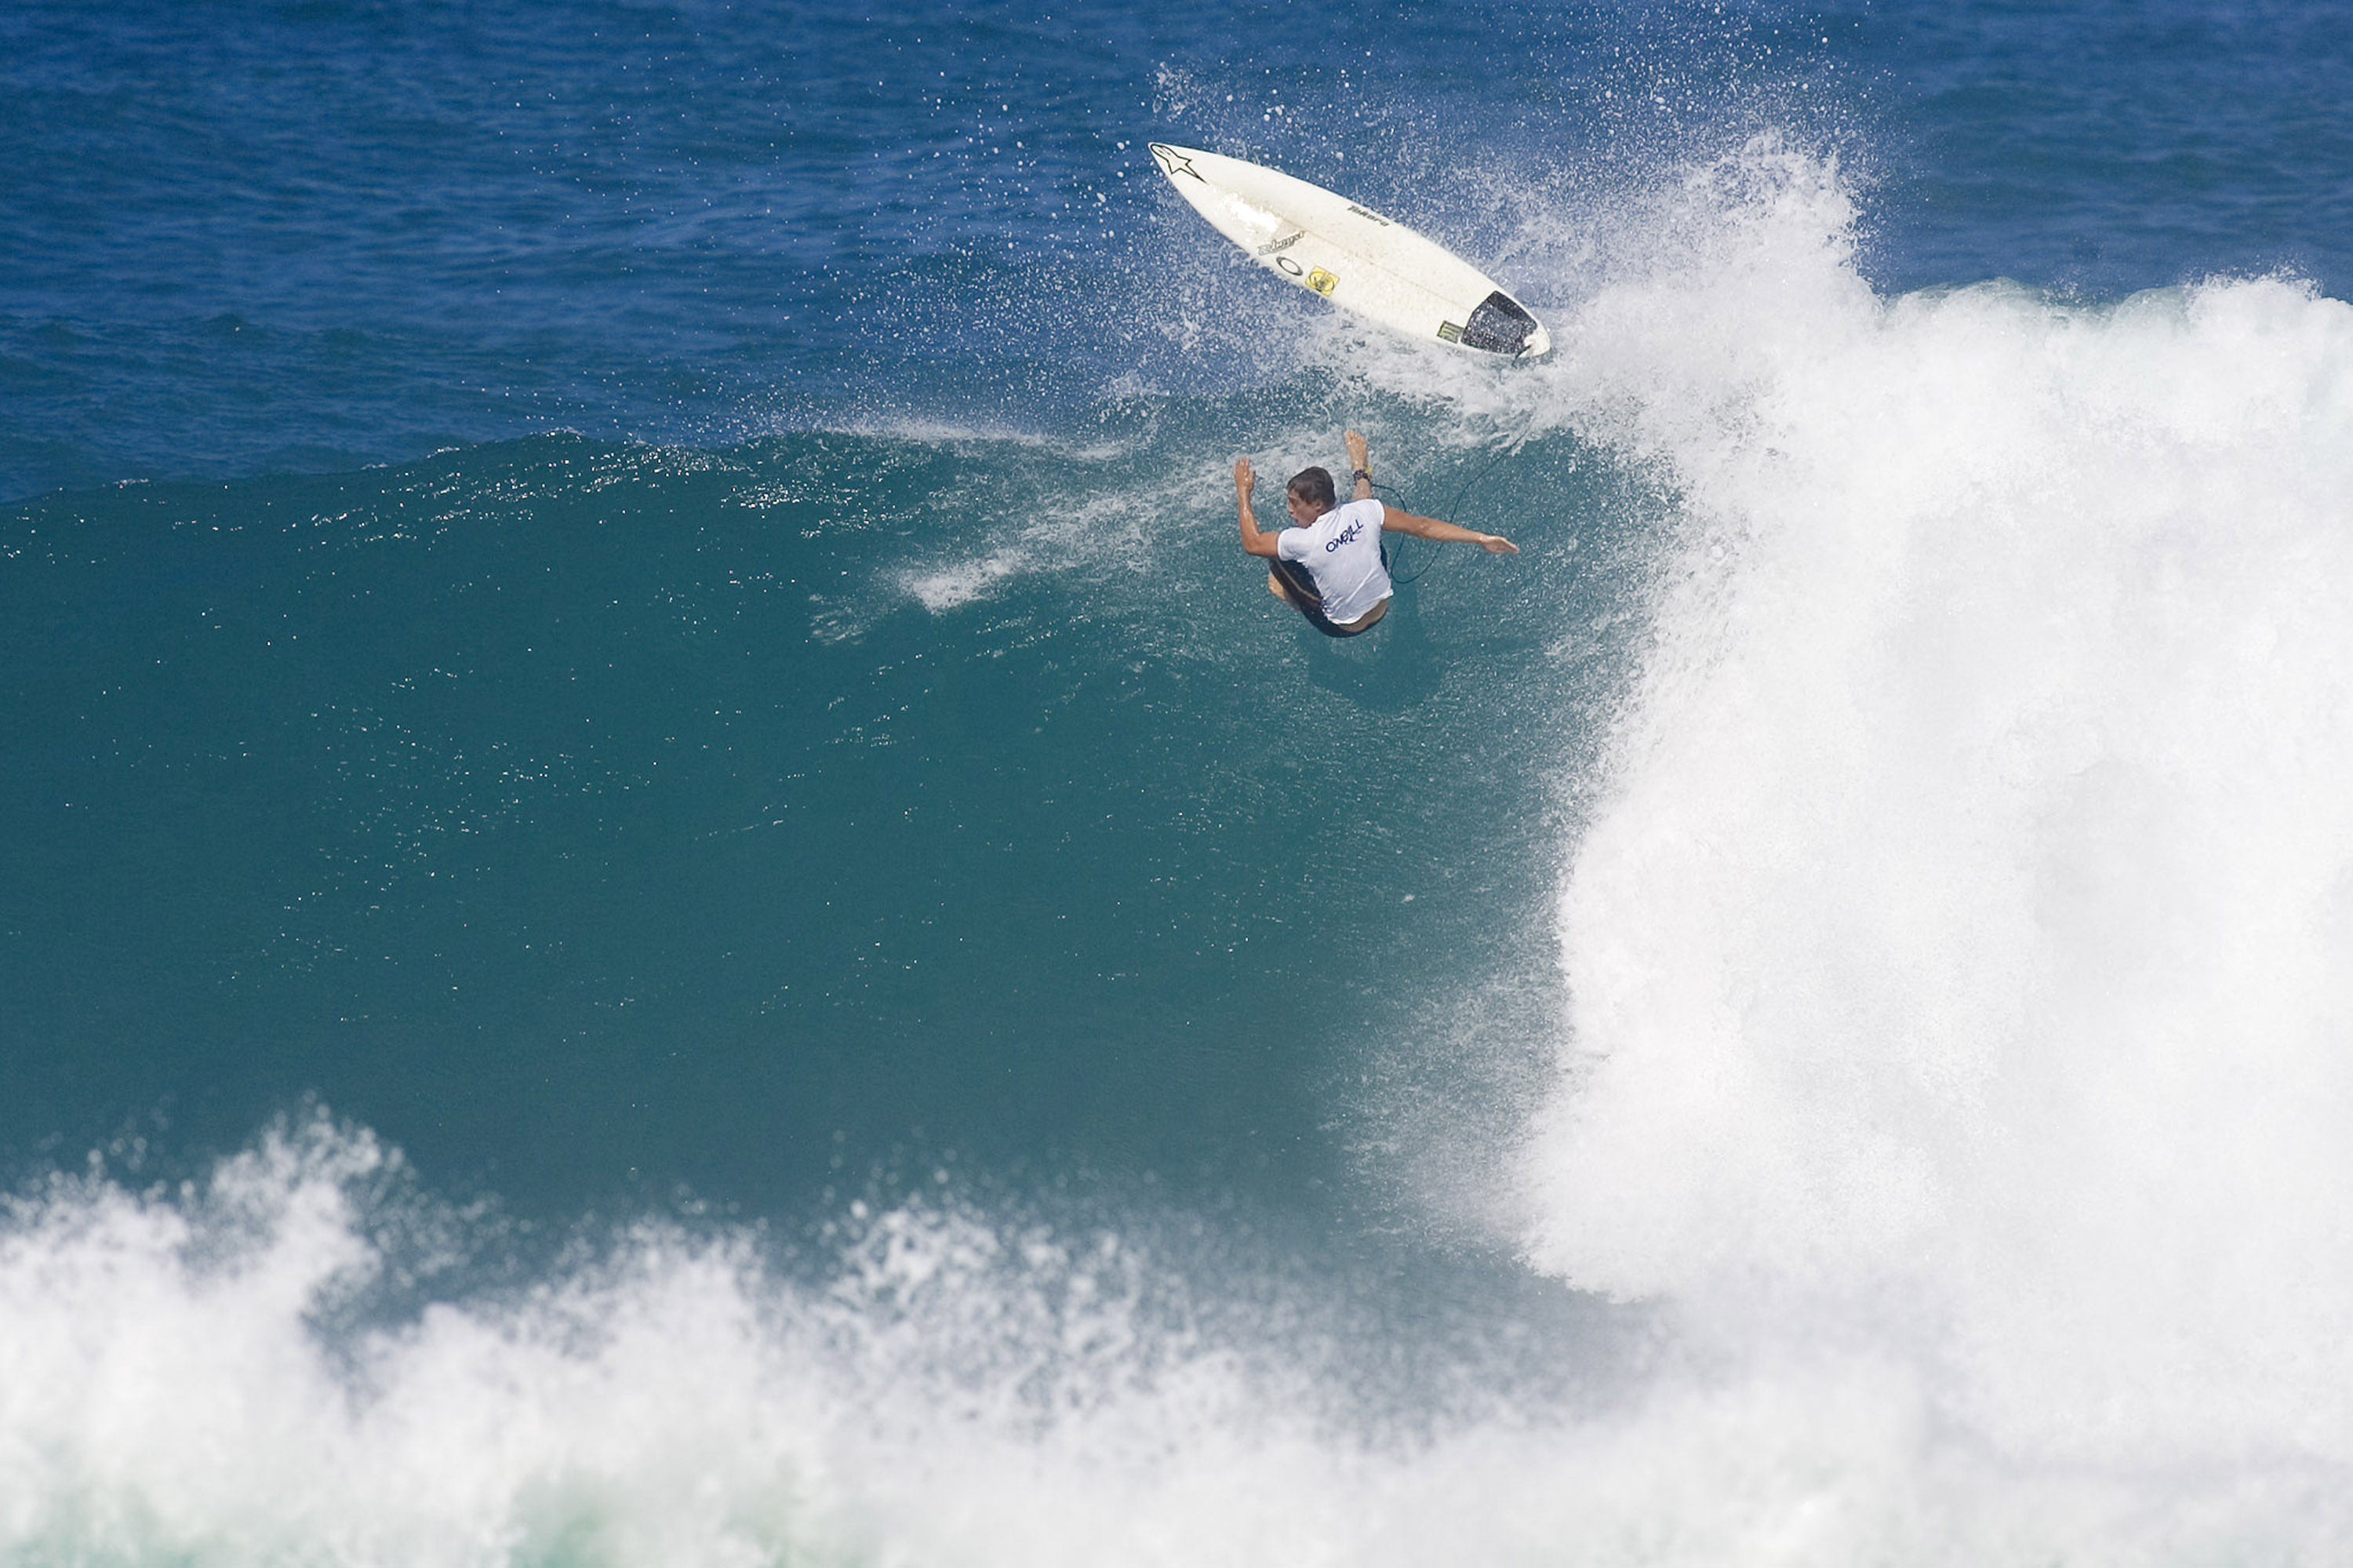 OAHU, HI - NOVEMBER 27:  (EDITORIAL USE ONLY) In this handout from Tostee.com, despite suffering a heavy wipeout, Makua Rothman (HI) wins his heat against Adrian Buchan of Australia, Bernardo Pigmeu of Brazil and Mike Todd of Australia in the round of 96